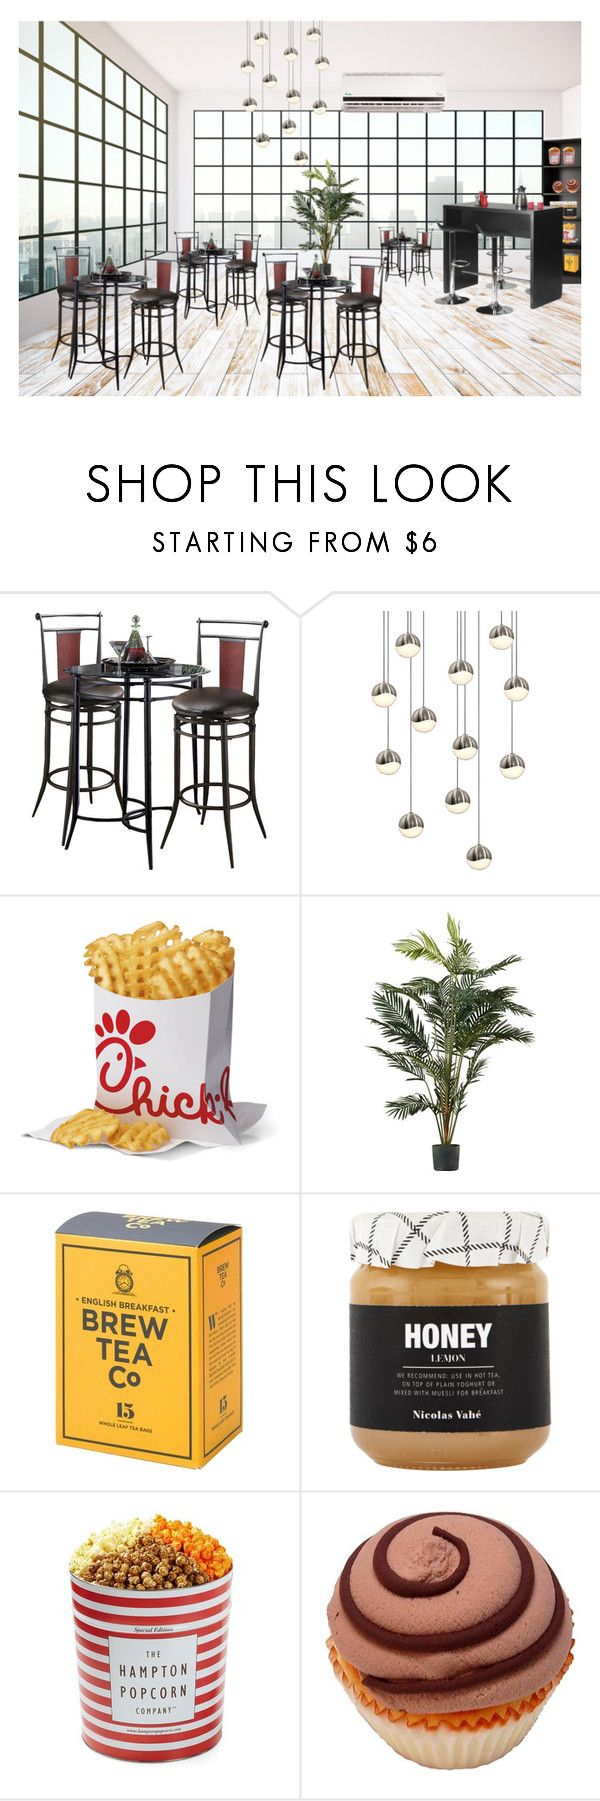 """cafe"" by esoso ❤ liked on Polyvore featuring interior, interiors, interior design, home, home decor, interior decorating, Hillsdale Furniture, Sonneman, Nicolas Vahé and The Hampton Popcorn Company"